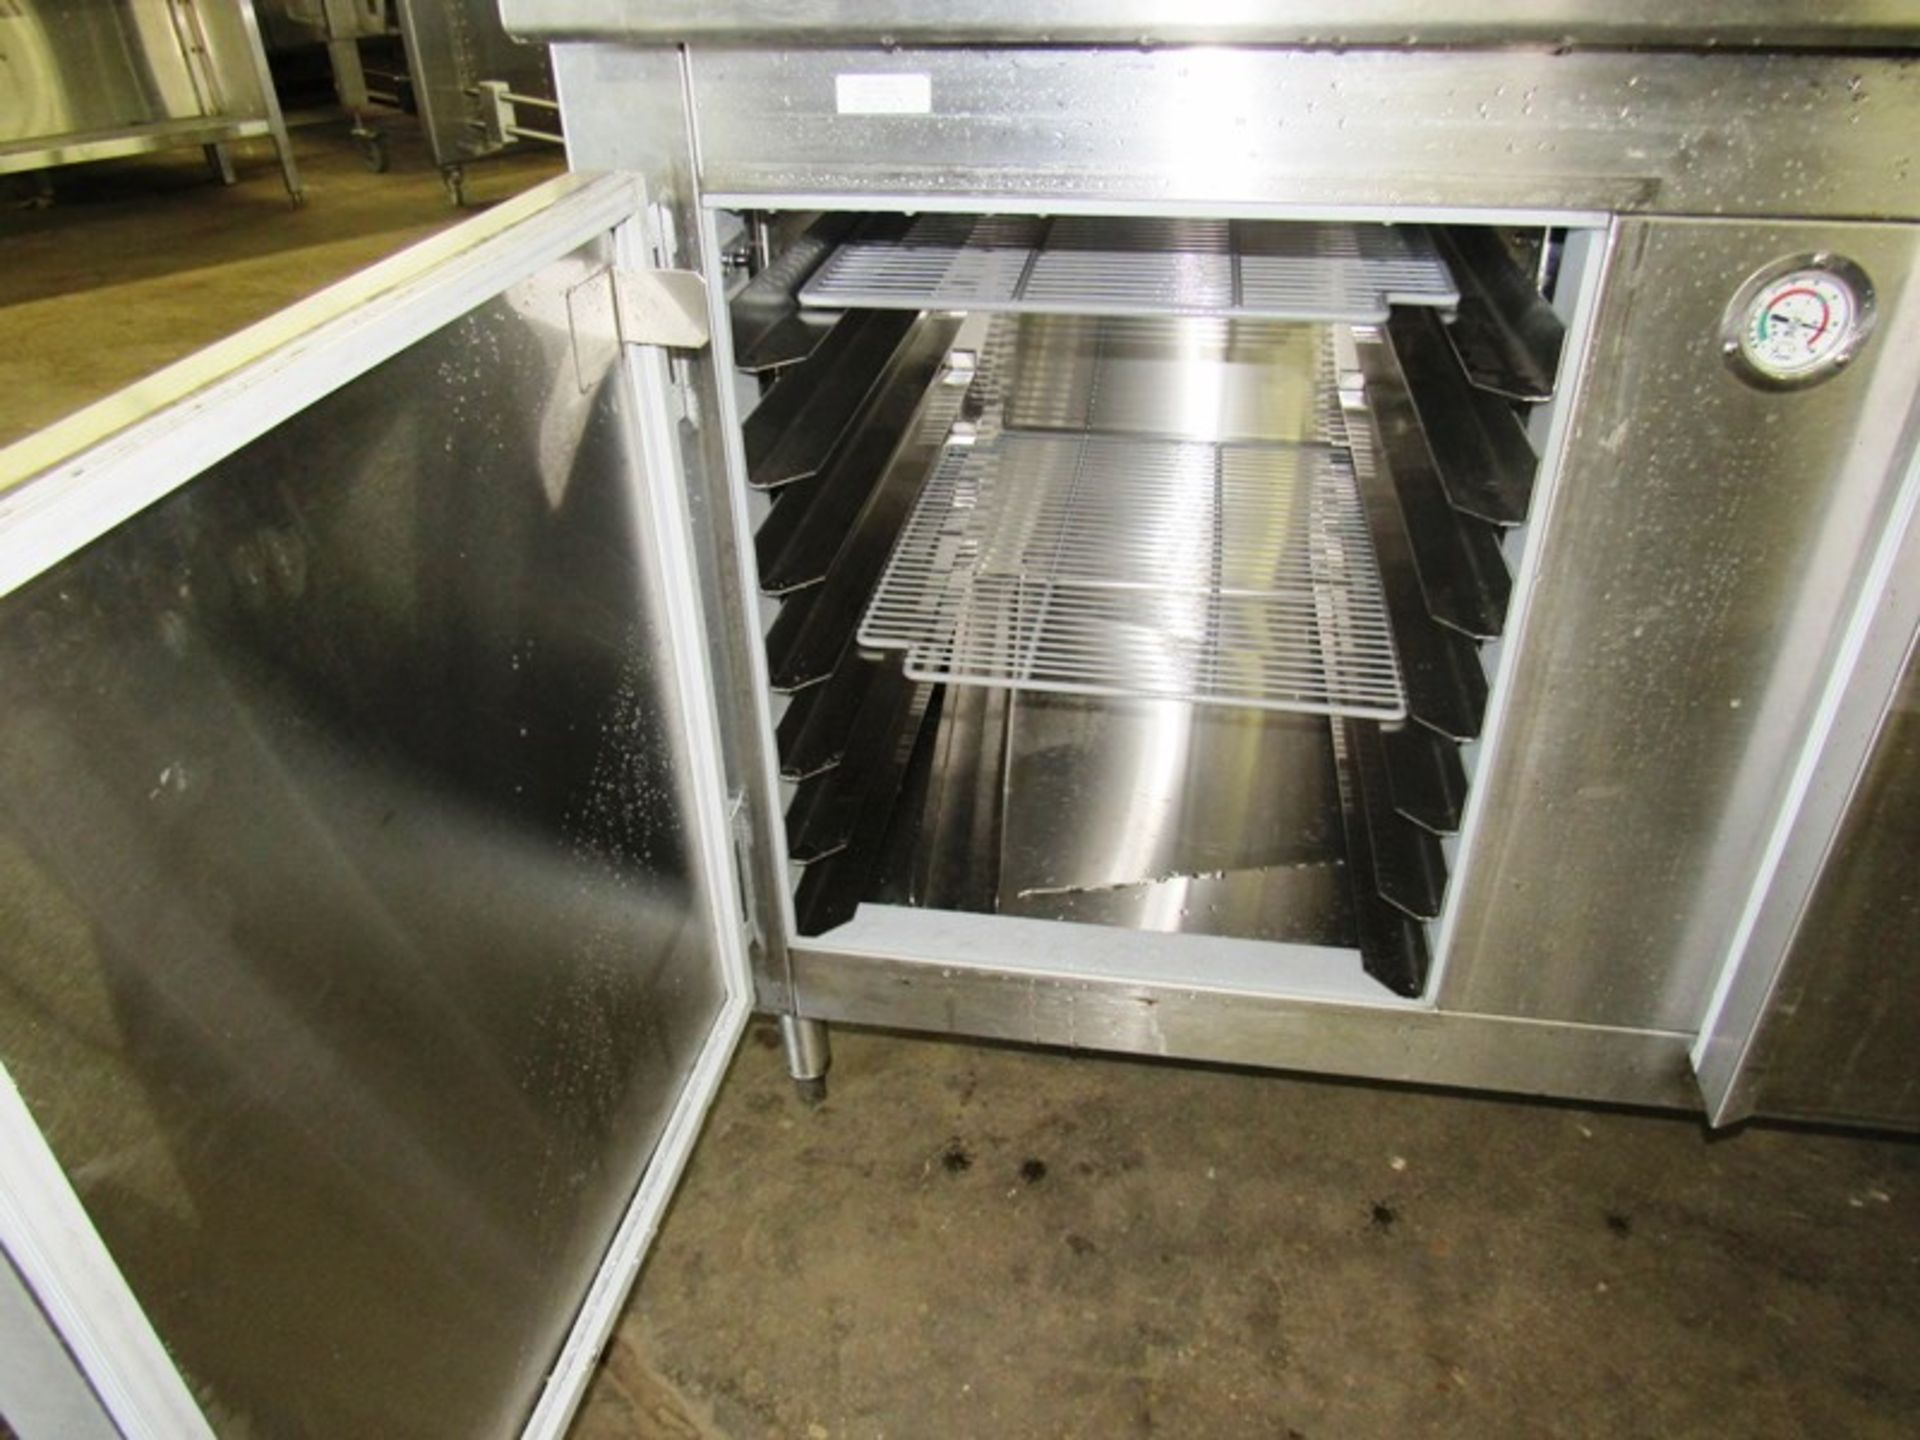 "Nationwide Fabrication Mdl. 3457-50 Stainless Steel Refrigerated Prep Table, 3 doors, 7 shelves, 80"" - Image 4 of 7"